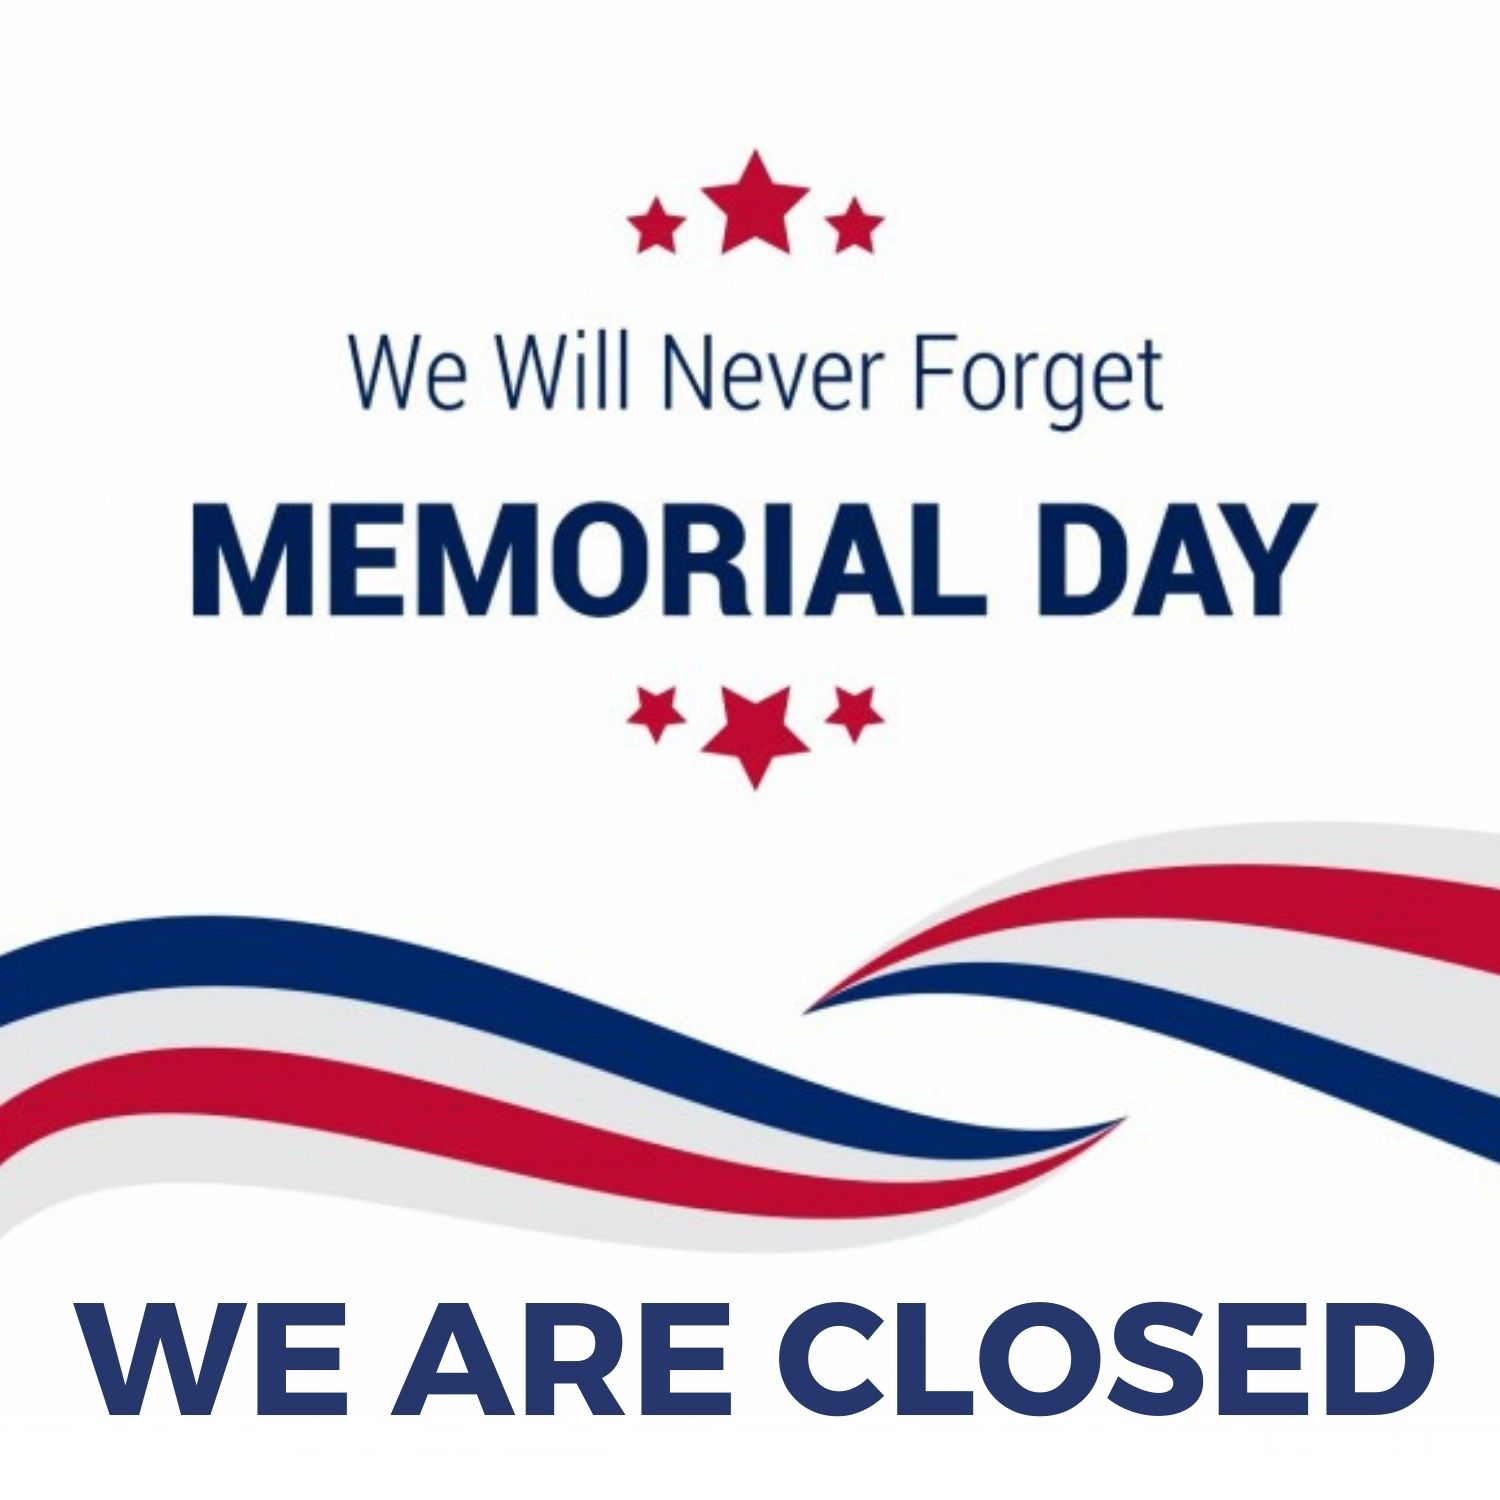 memorial day closed sign images